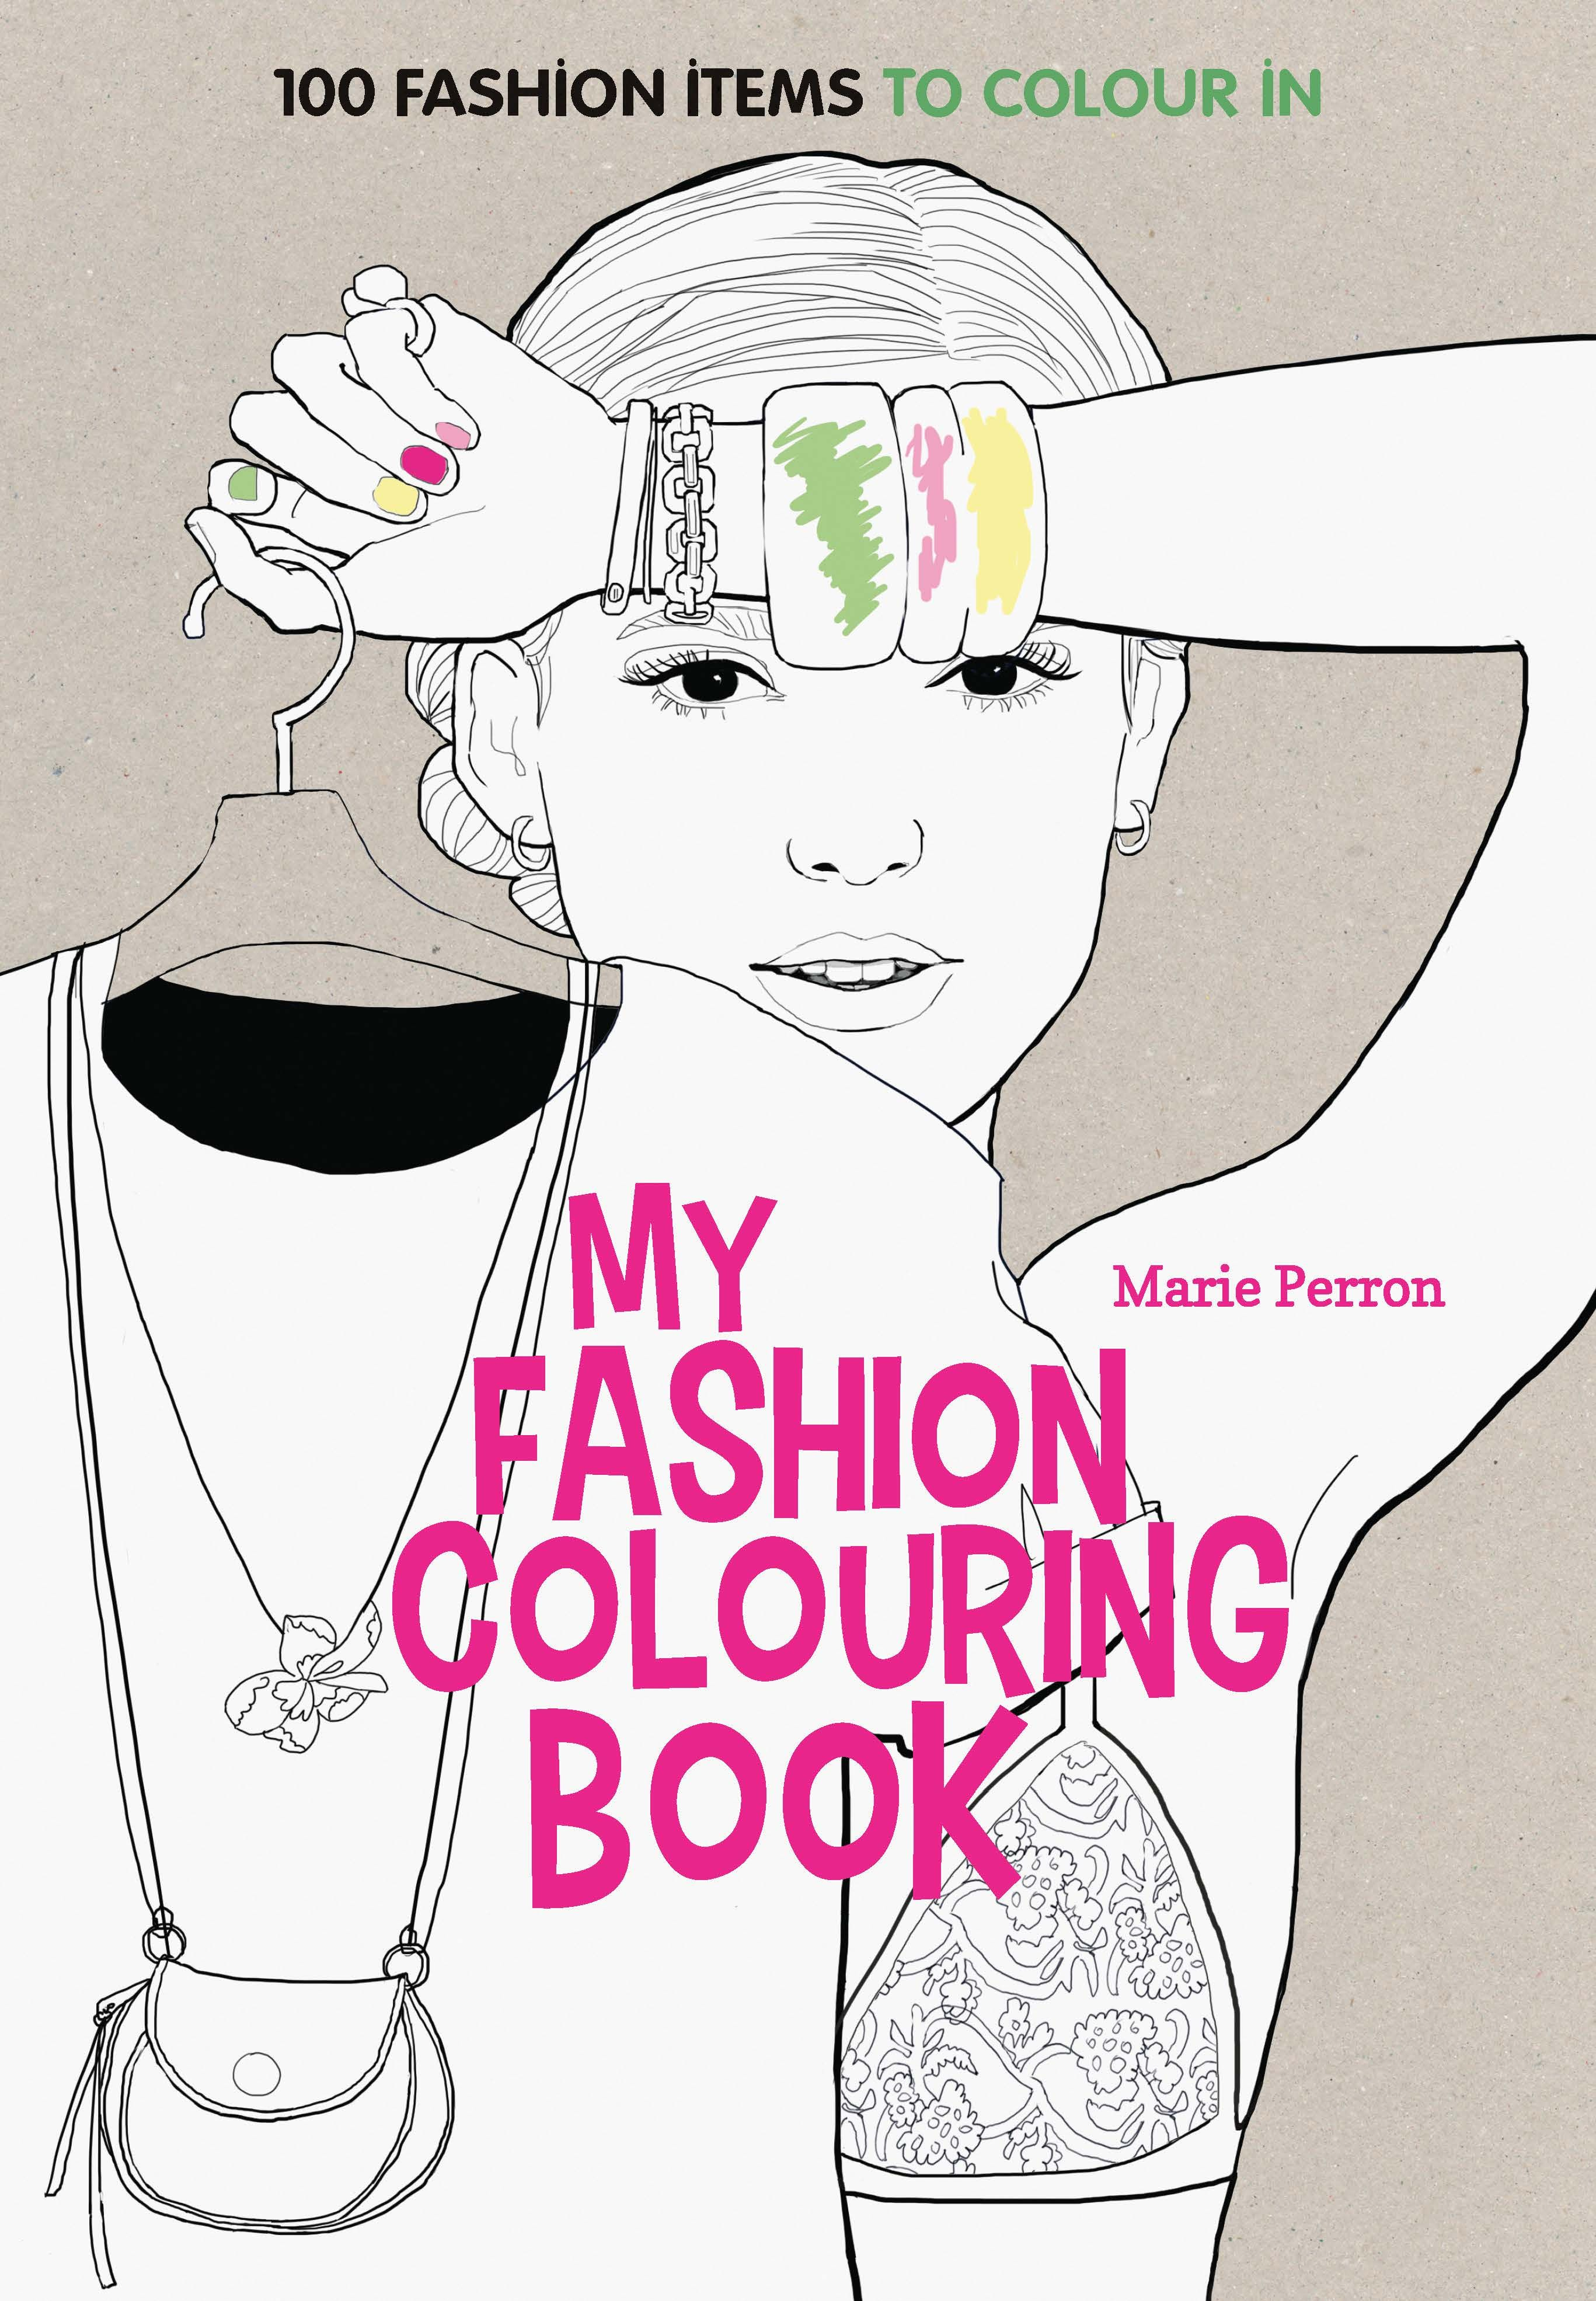 Colour book art - Art Therapy My Fashion Colouring Book 100 Fashion Items To Colour In By Marie